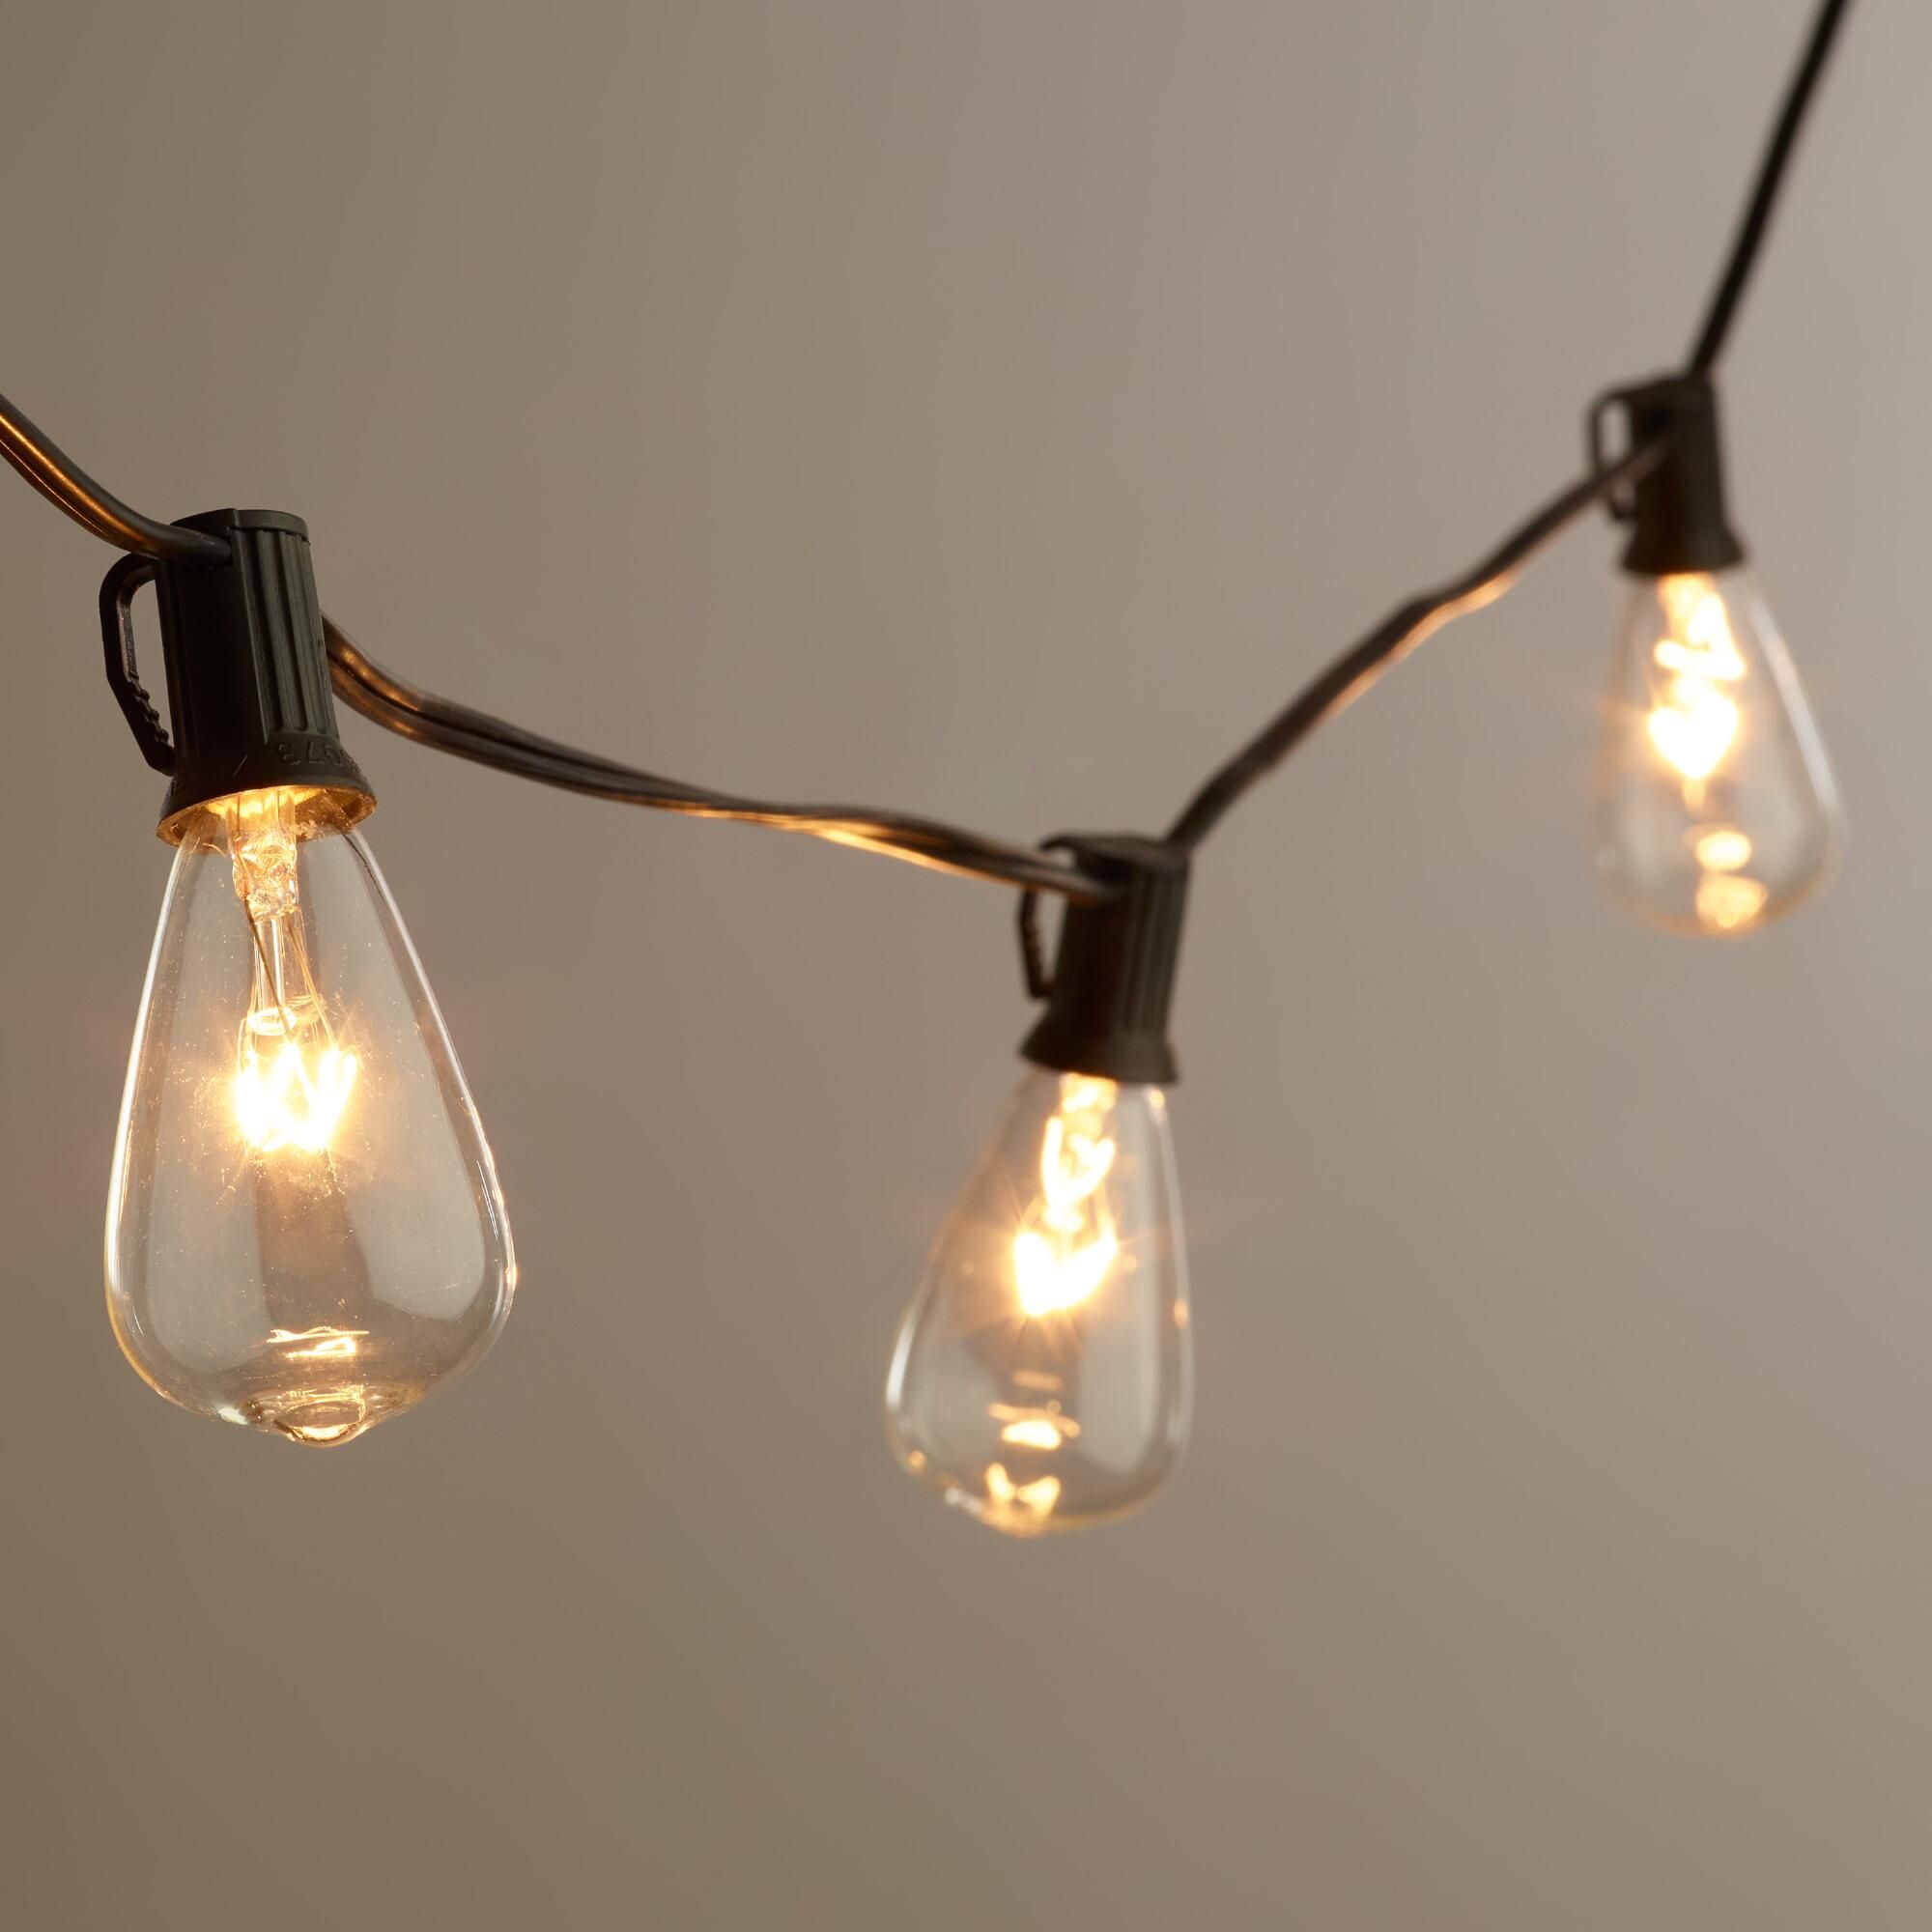 Light Bulbs On A String Mesmerizing Inspiredthe Vintage Light Bulbs Inventedthomas Edison Our Review